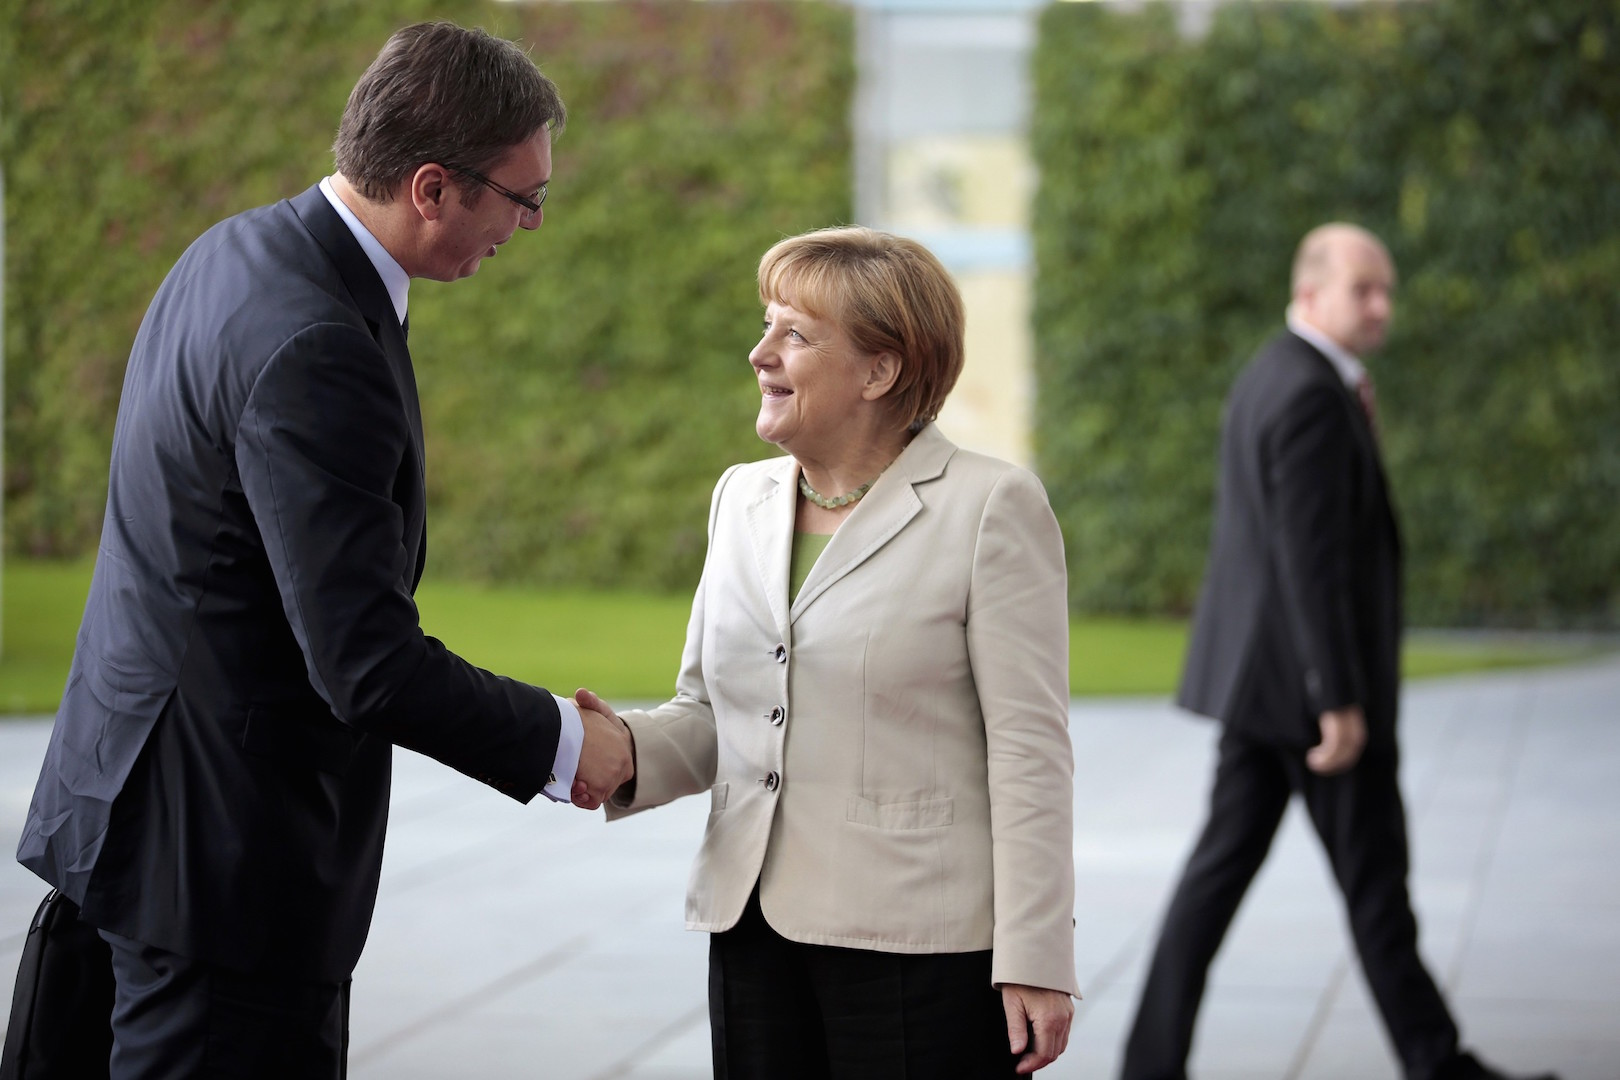 Relationship between Merkel and Vucic is particularly close